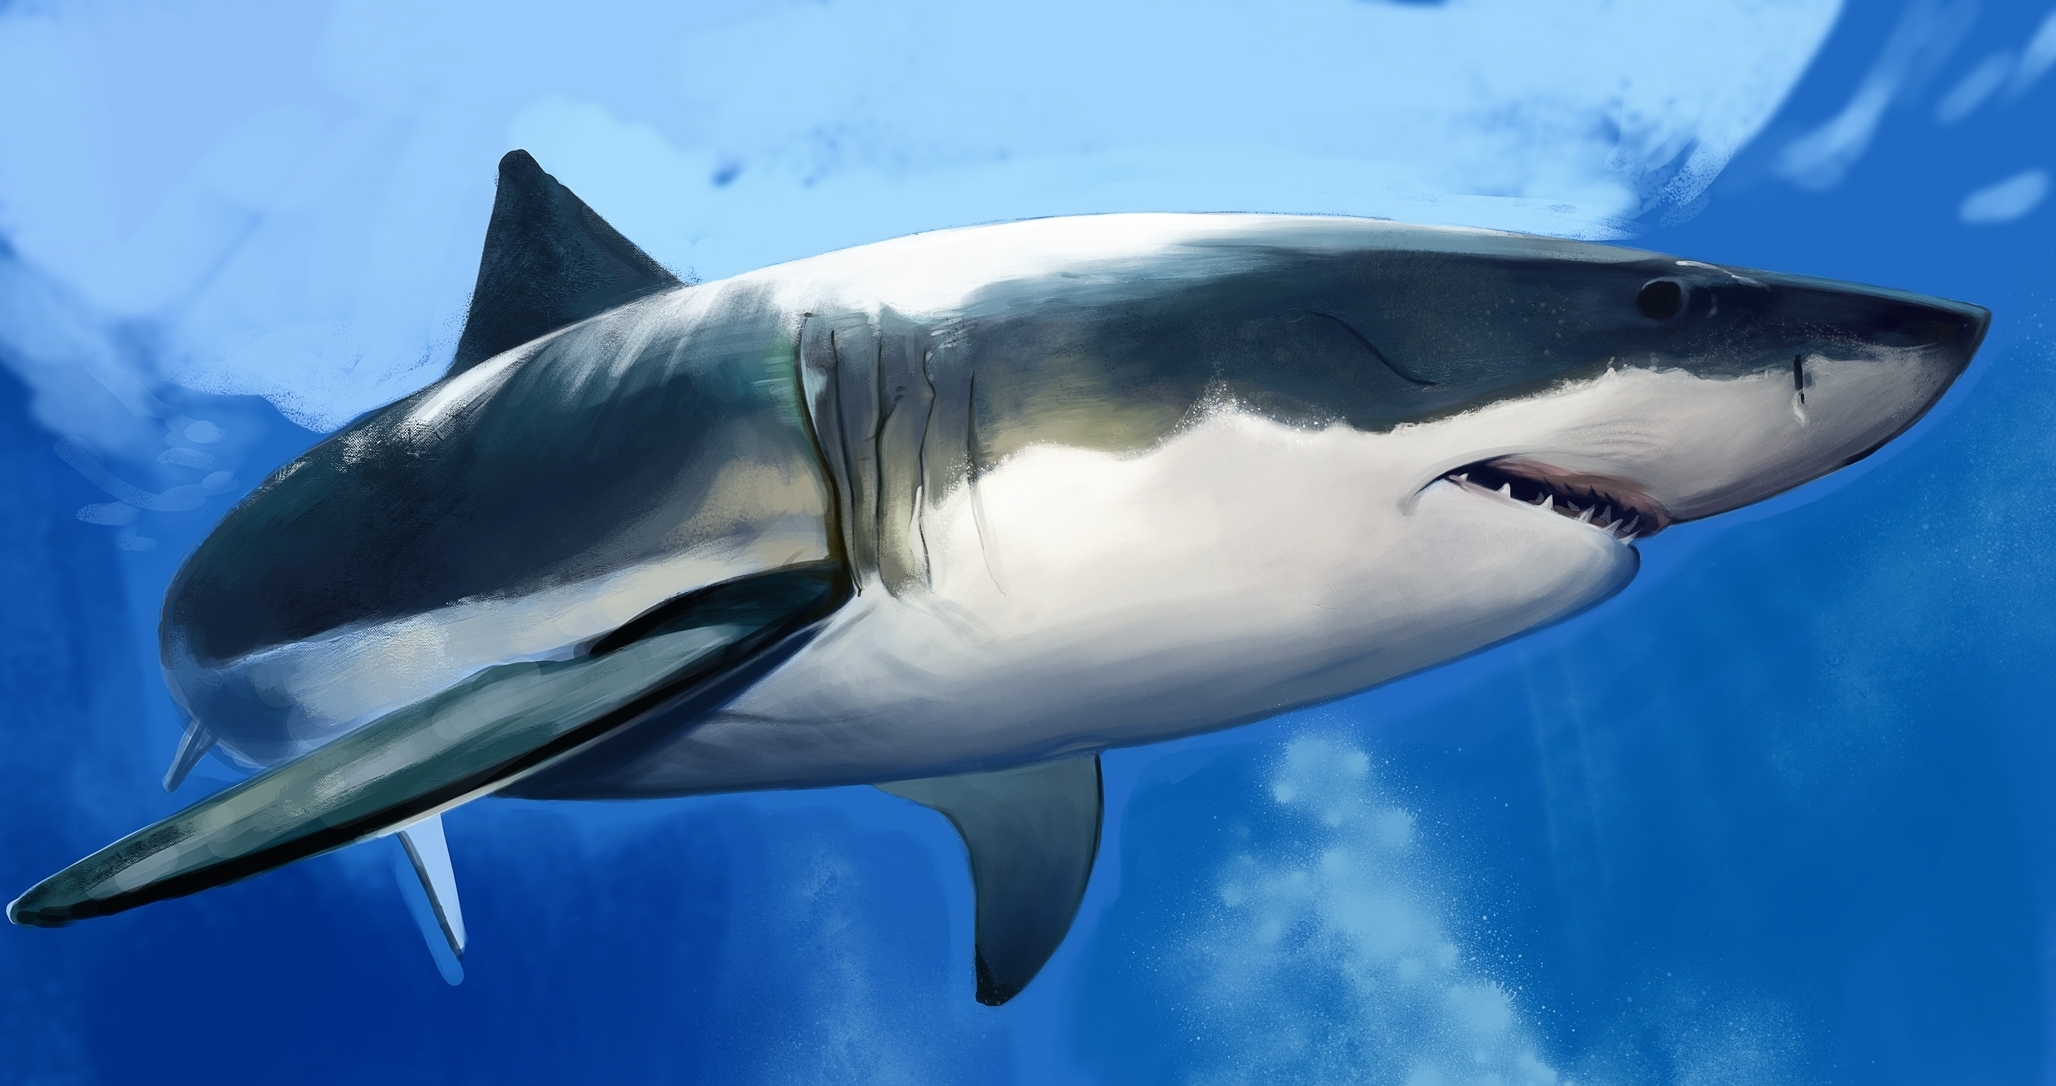 download wallpaper shark 1600 - photo #42